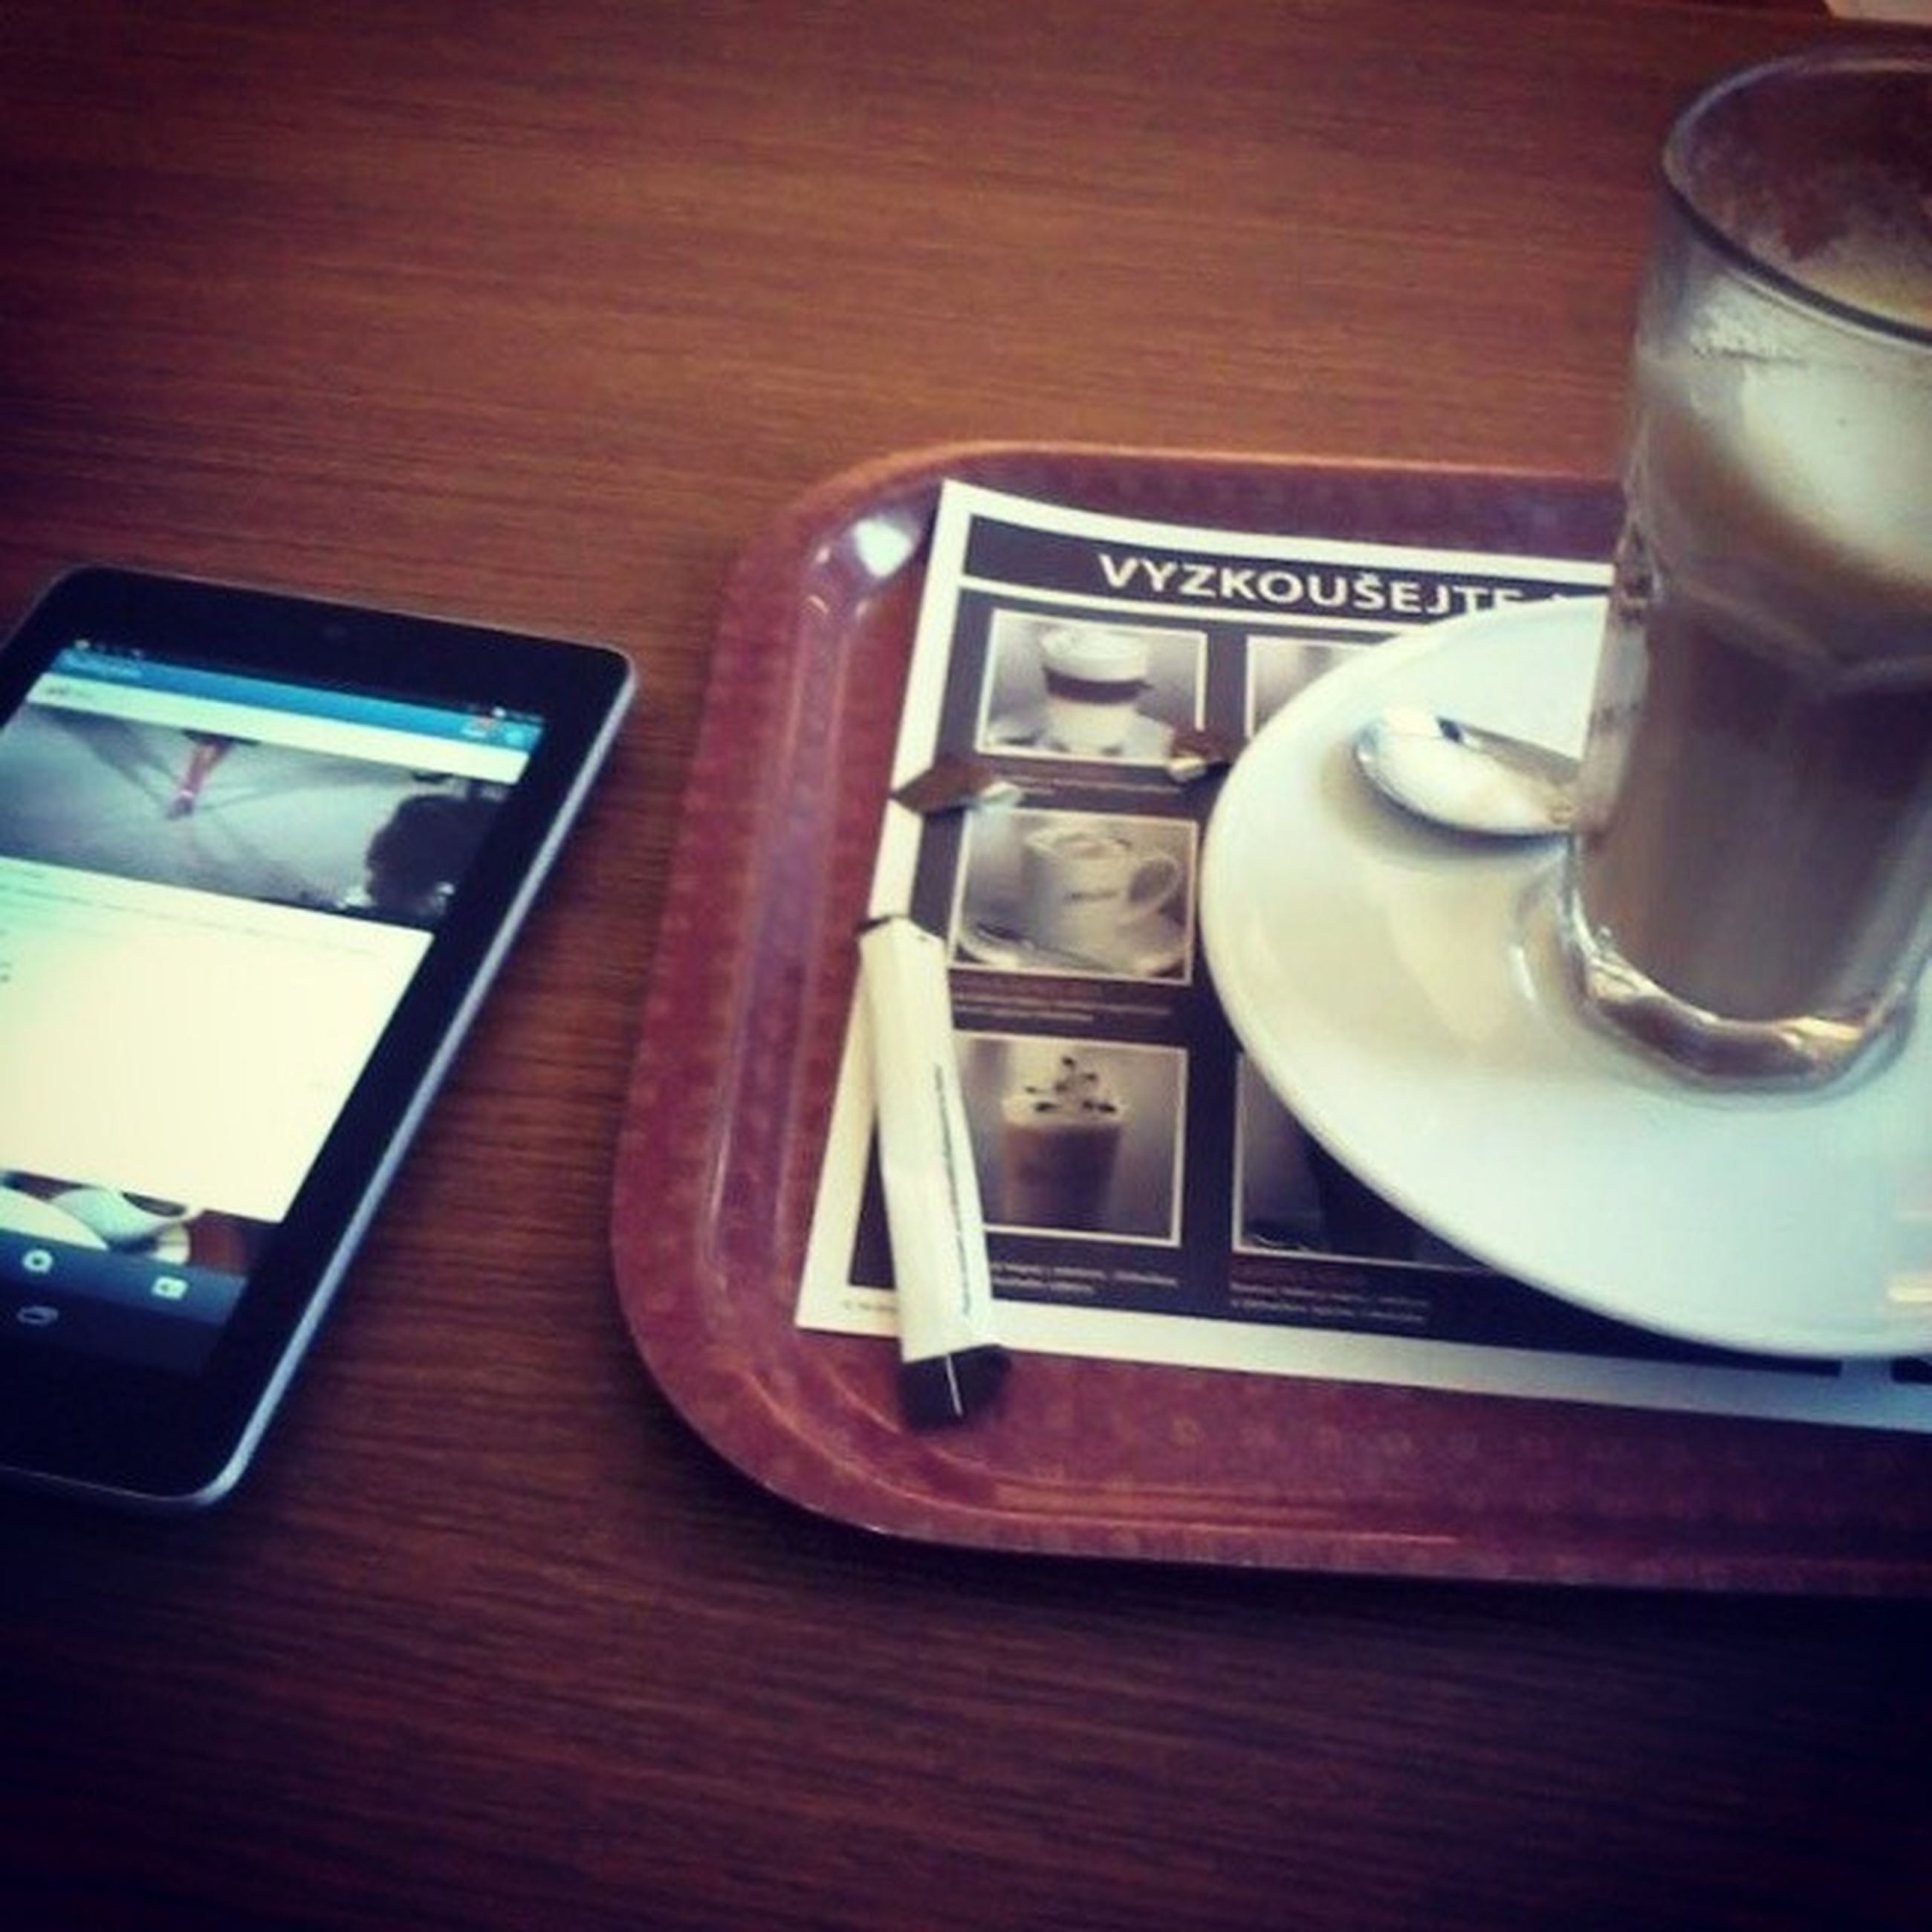 indoors, table, still life, close-up, communication, drink, no people, food and drink, technology, glass - material, coffee cup, reflection, wood - material, western script, refreshment, text, old-fashioned, retro styled, day, high angle view